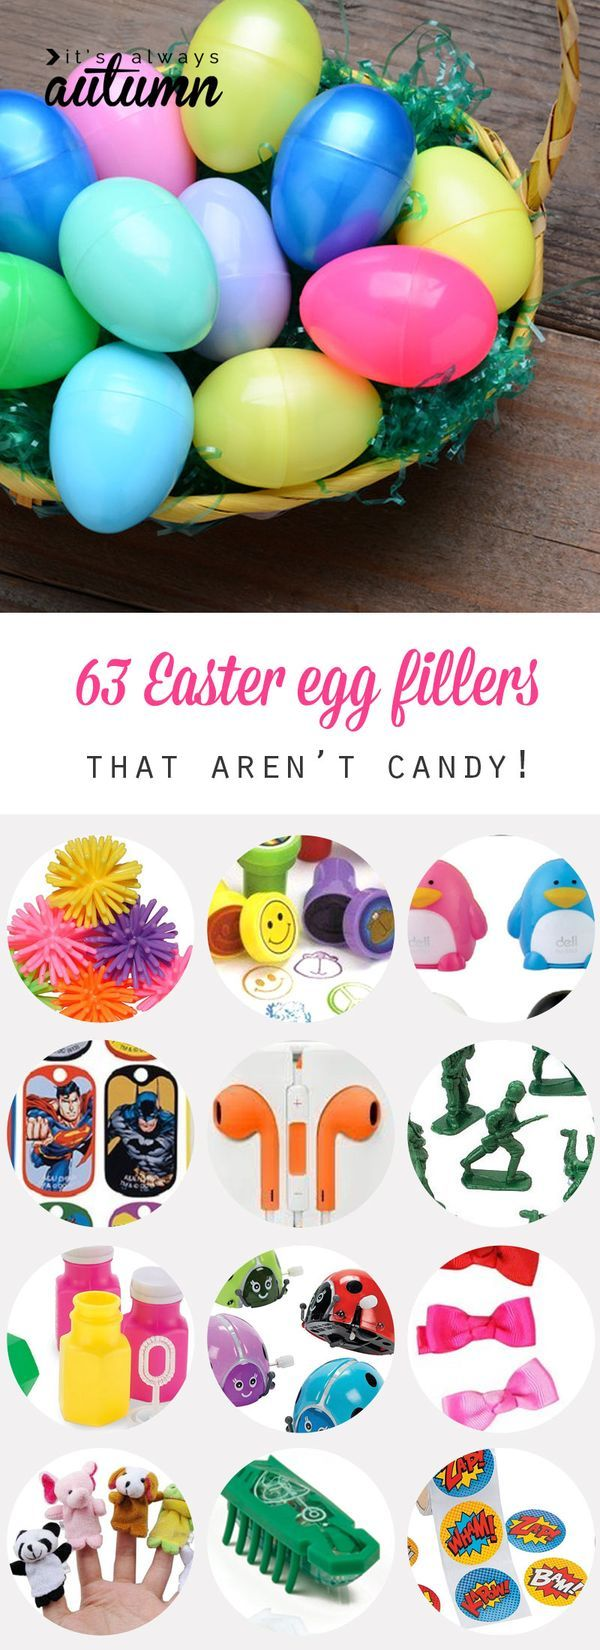 63 things to put in Easter eggs that aren't candy. Great ideas for non-candy egg fillers, plus links for where to get them!